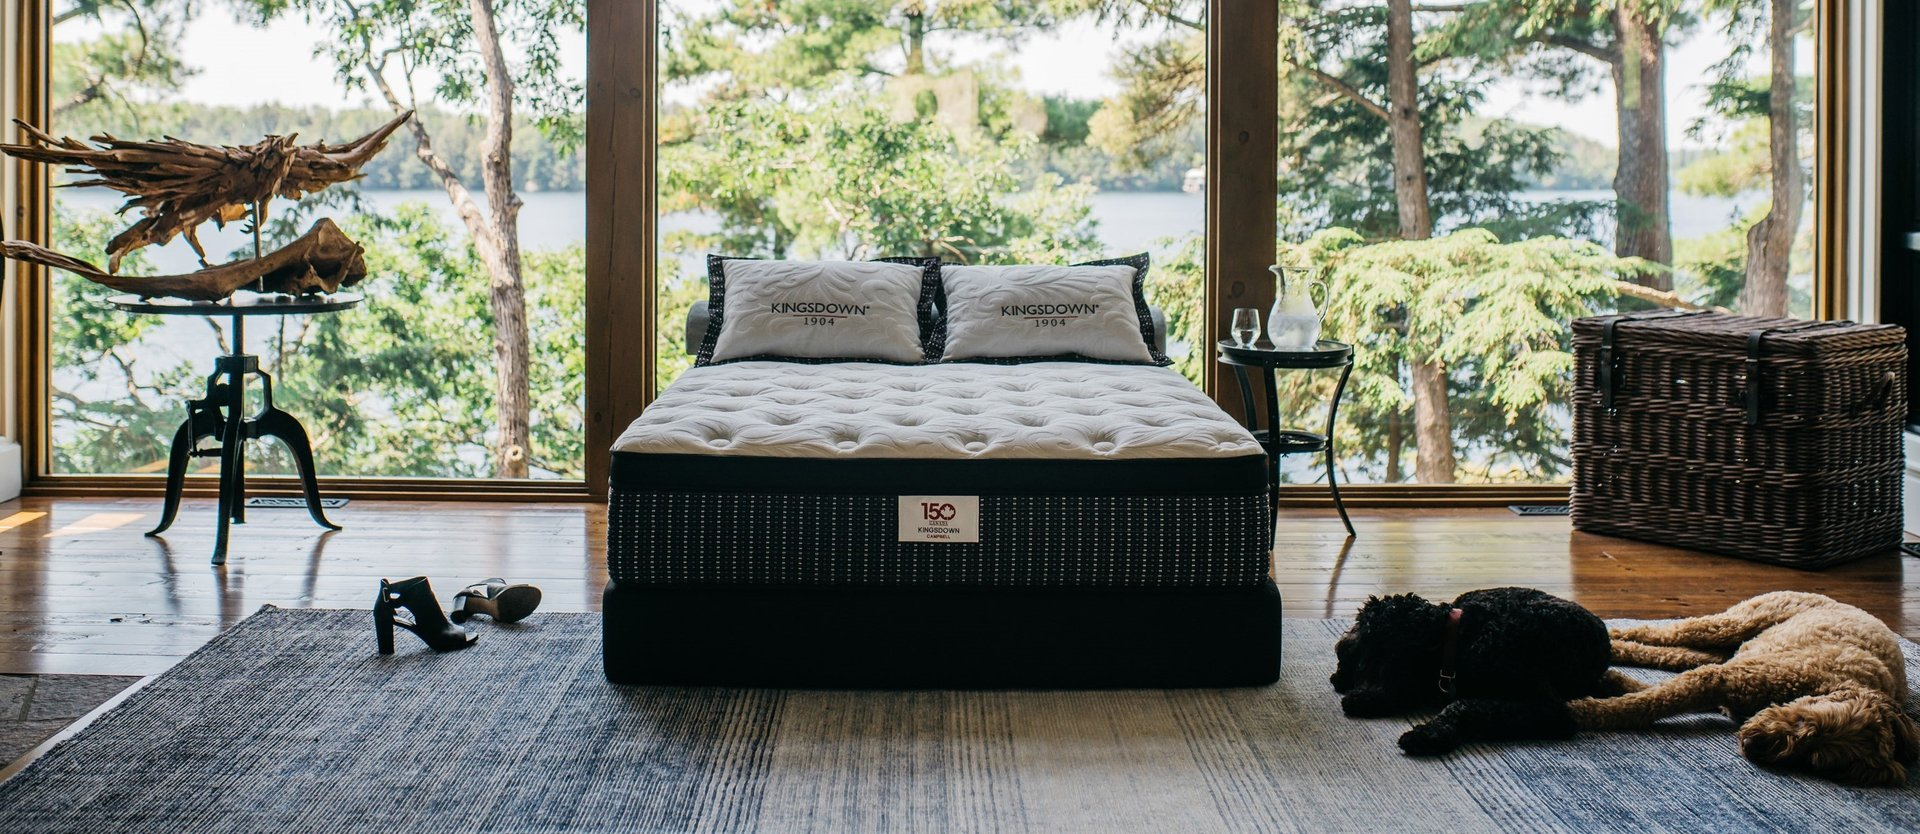 We are an Authorized Tempur-Pedic® Product Dealer